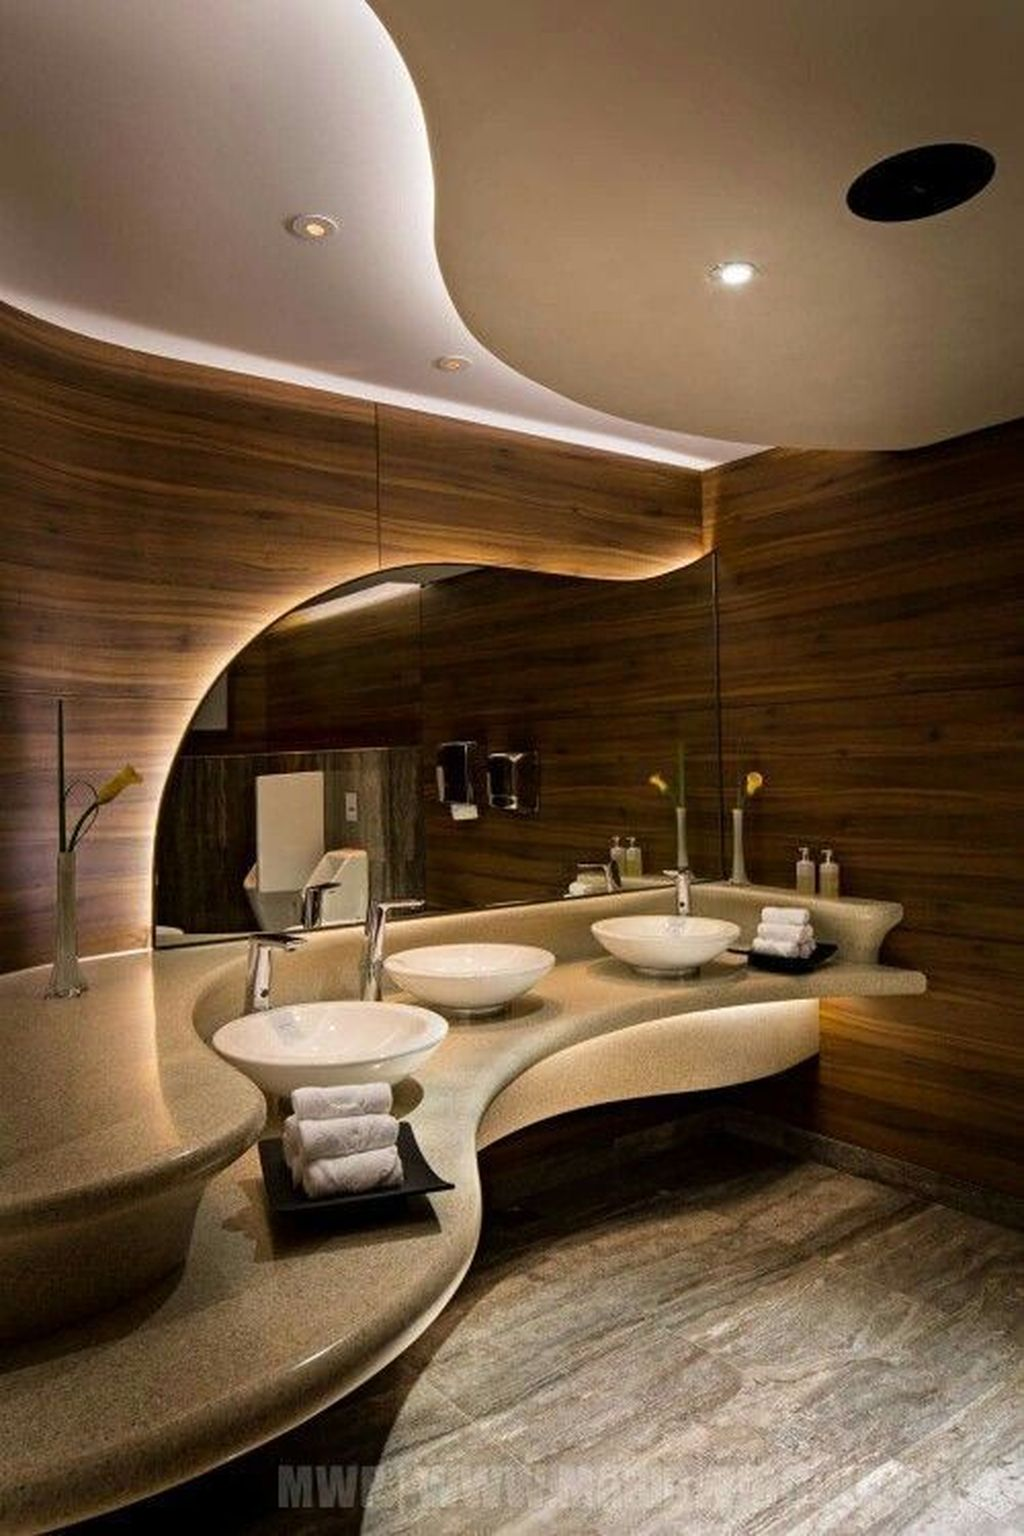 Luxury Bathroom Design And Decor Ideas 17